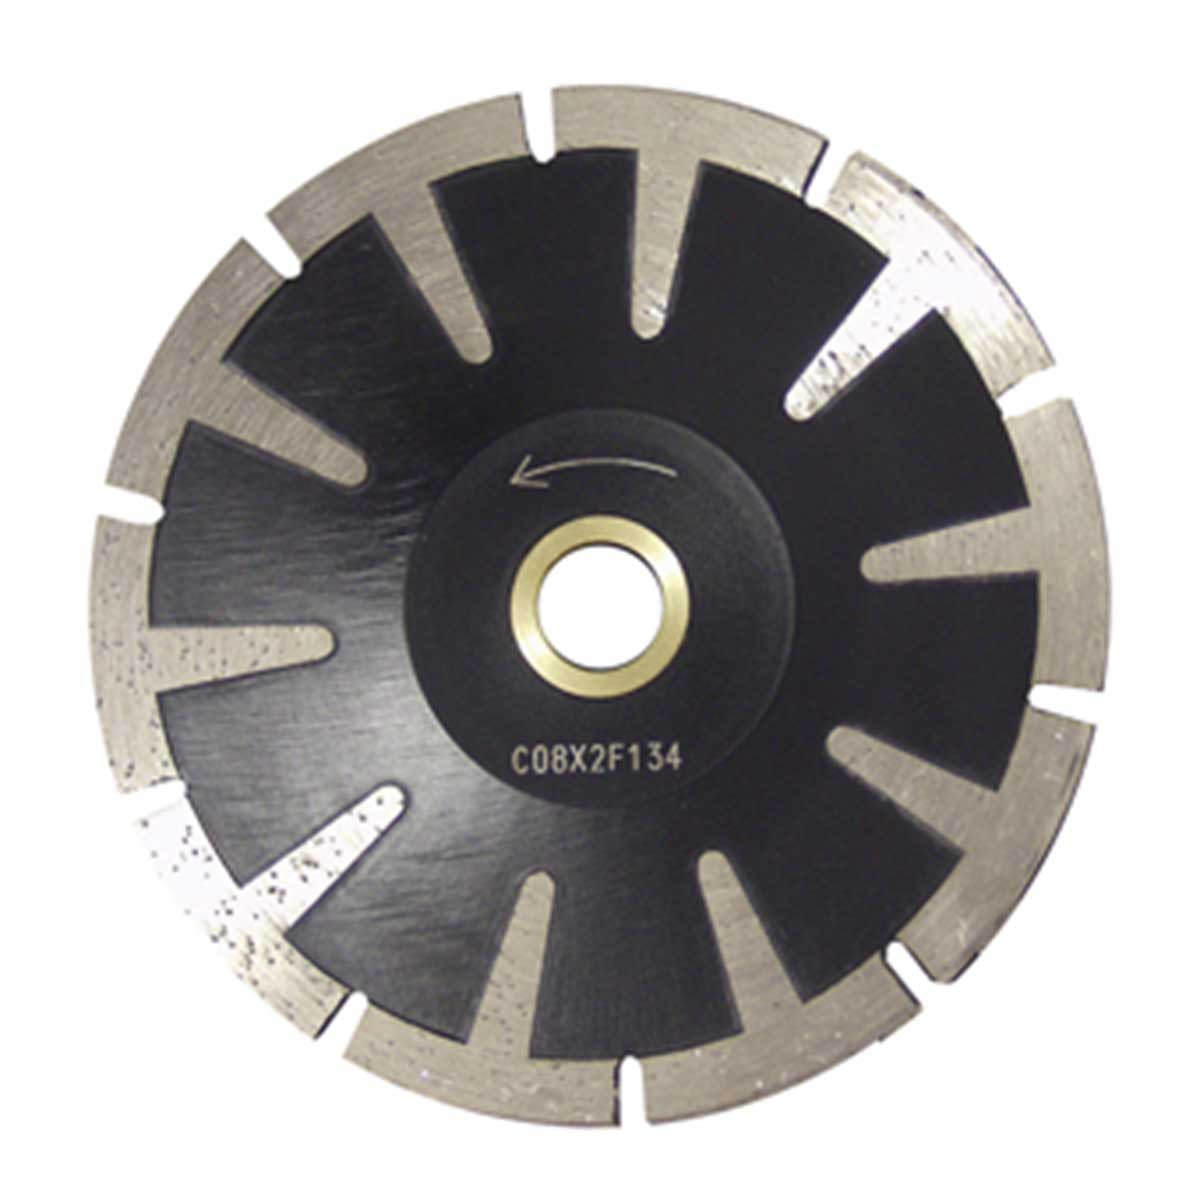 diamant boart 5in contourcut diamond blade